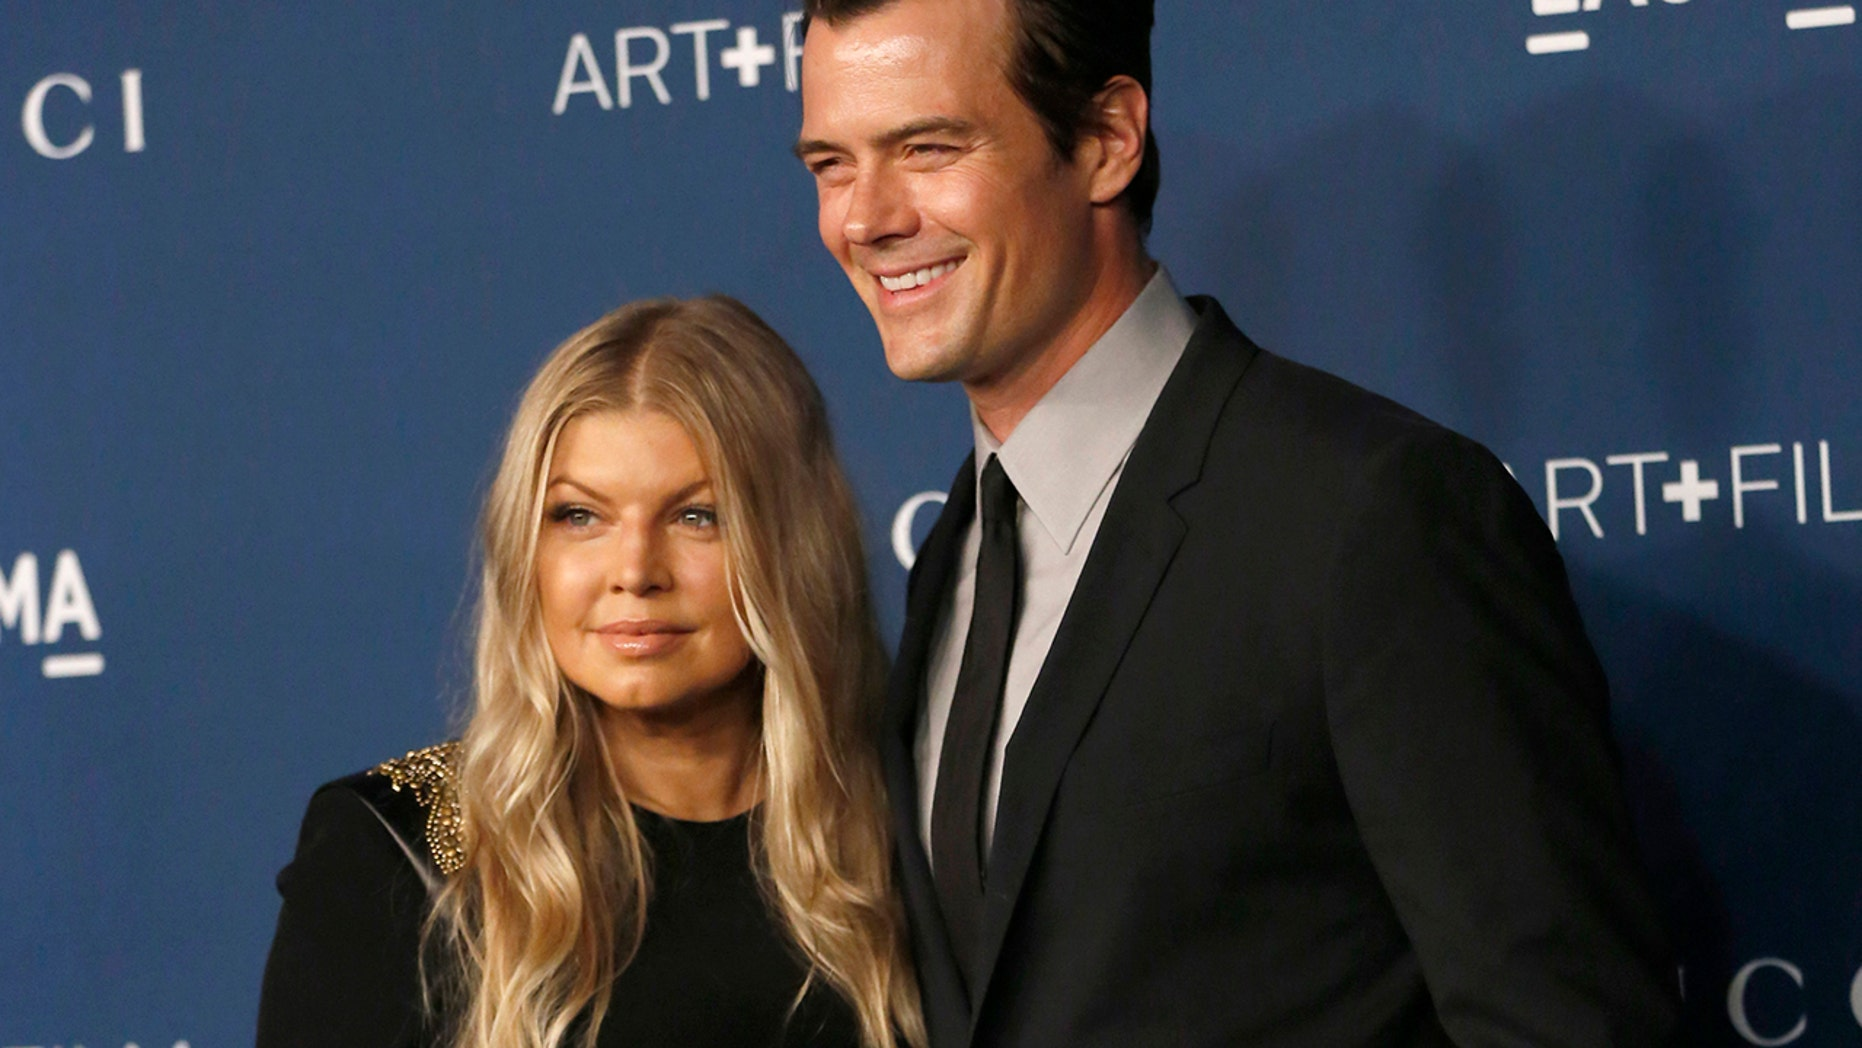 Actor Josh Duhamel and singer Fergie pose at the Los Angeles County Museum of Art (LACMA) 2013 Art+Film Gala in Los Angeles, California November 2, 2013.